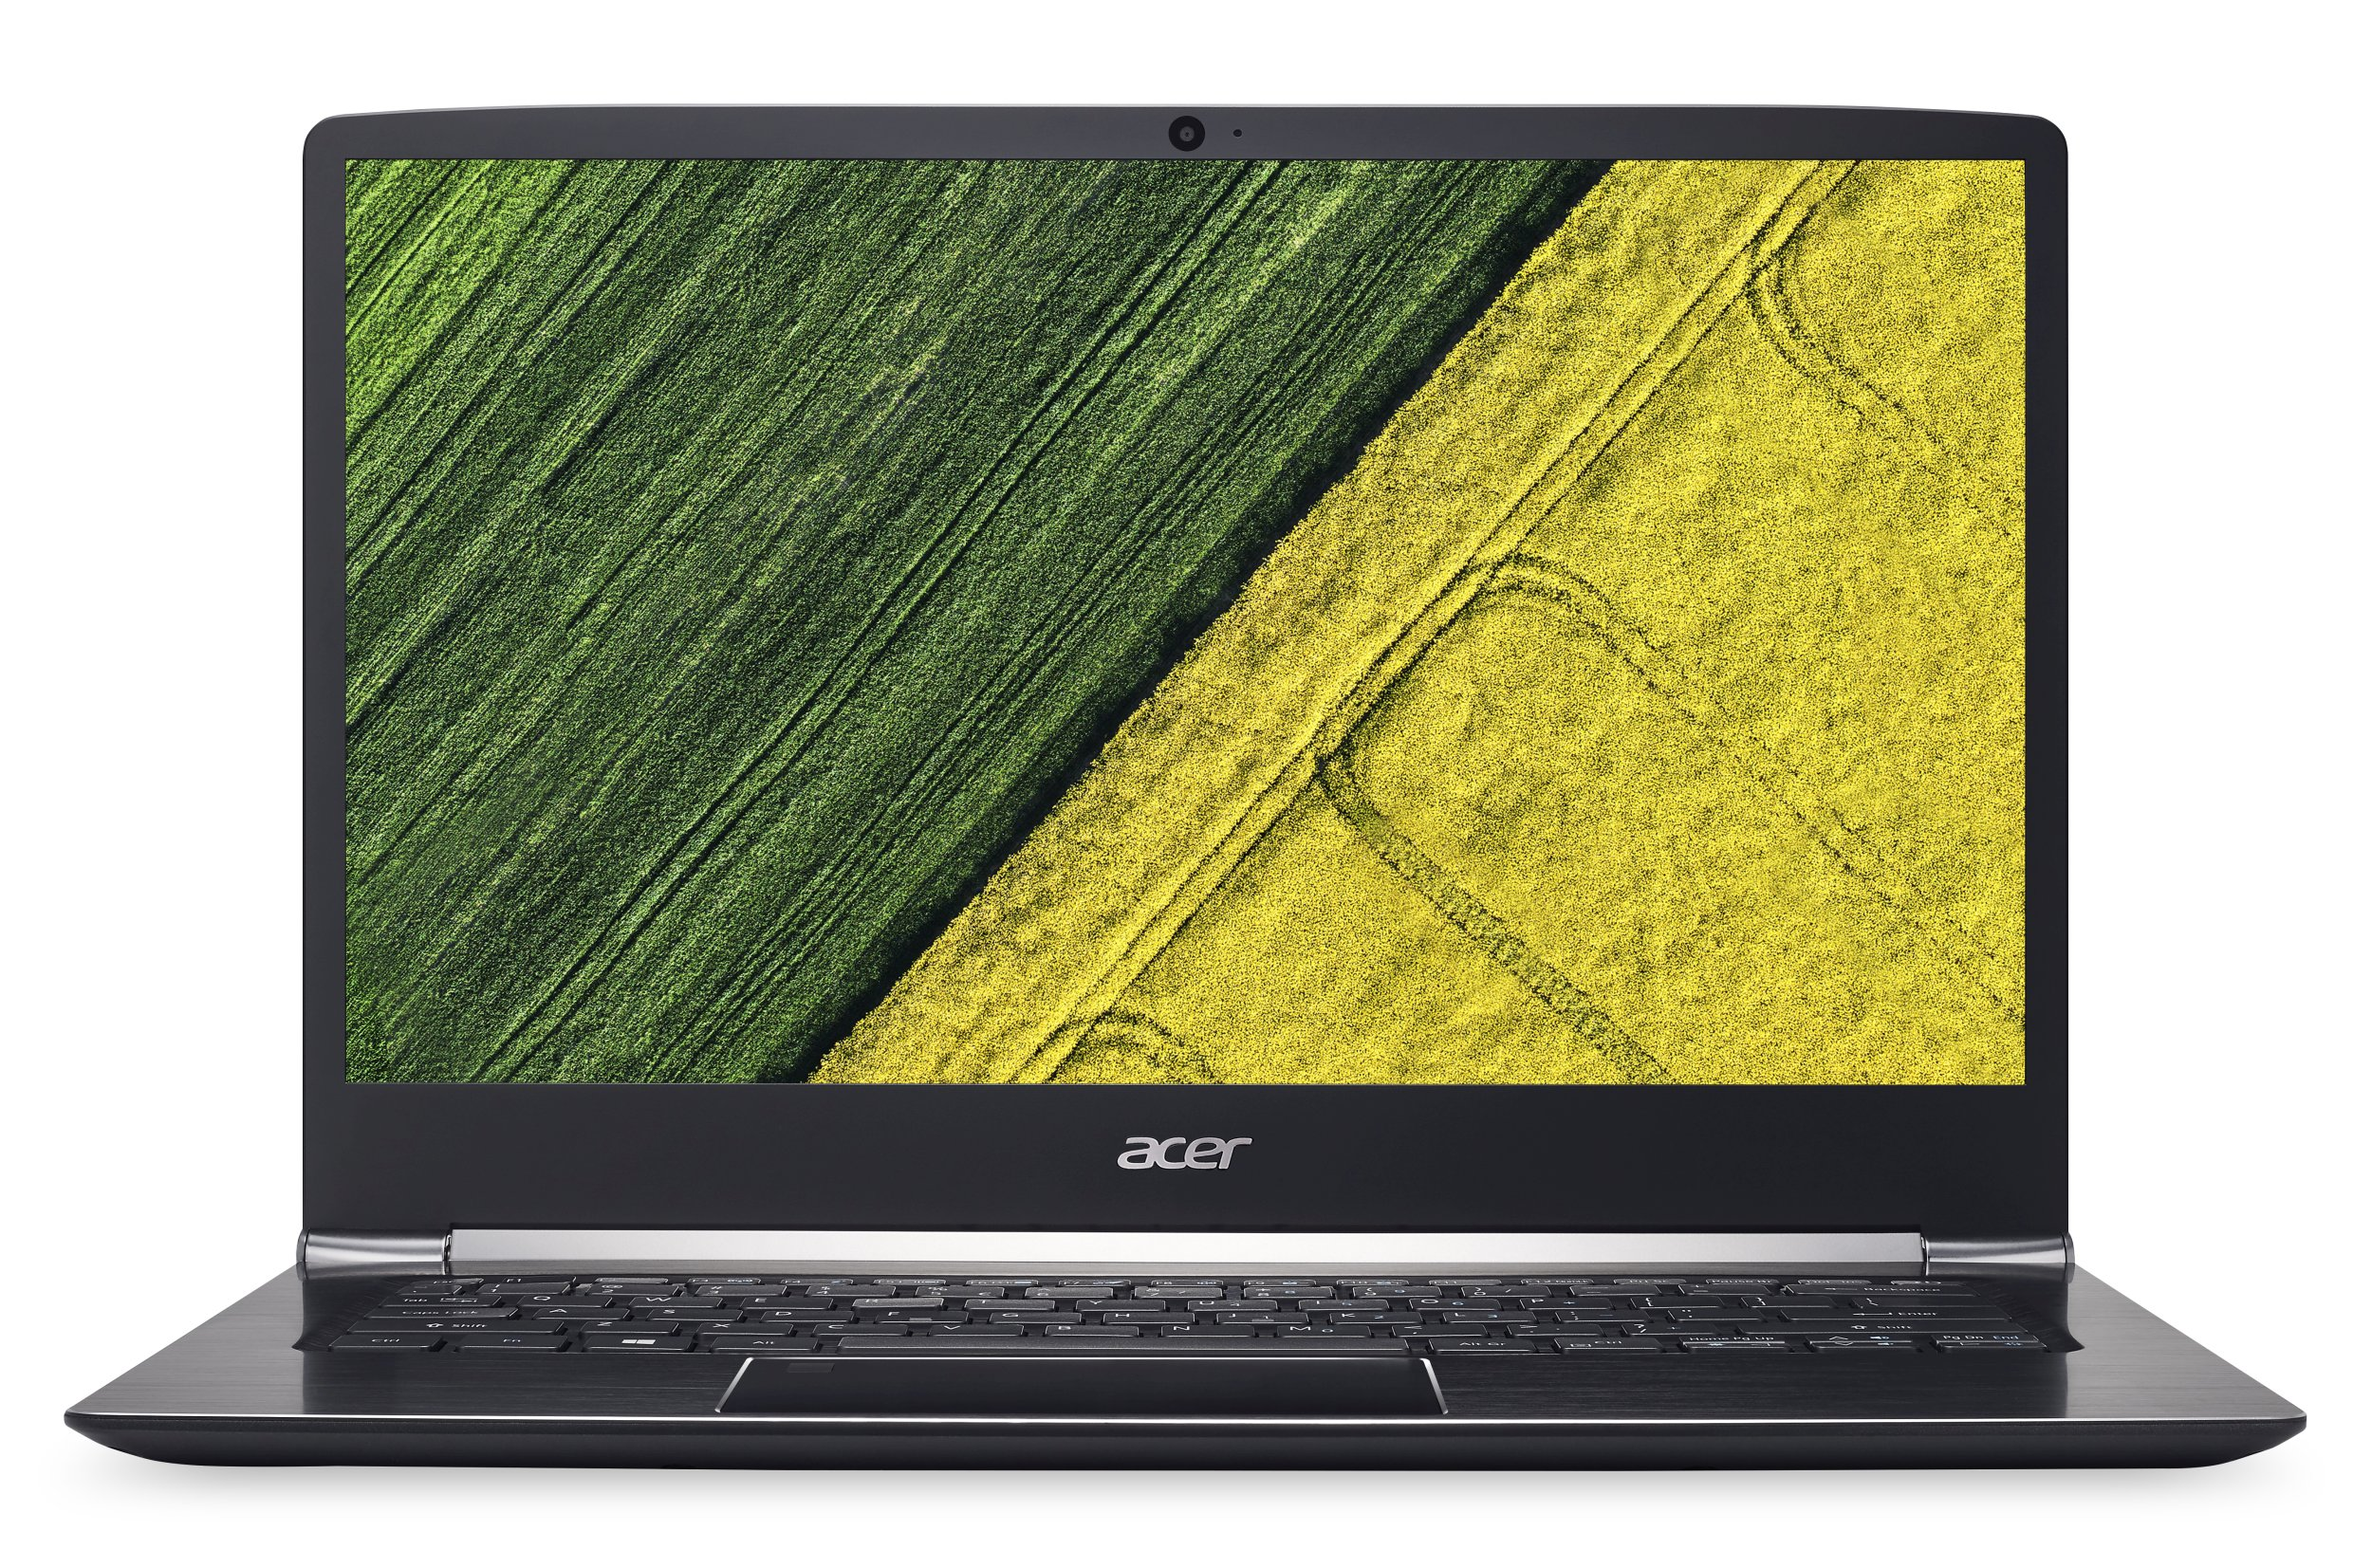 "Acer Swift 5 (SF514-51-5763) i5-7200U/8 GB+N/256GB PCIe SSD M.2+N/A/HD Graphics /14"" FHD lesklý IPS/W10 Home/Black"